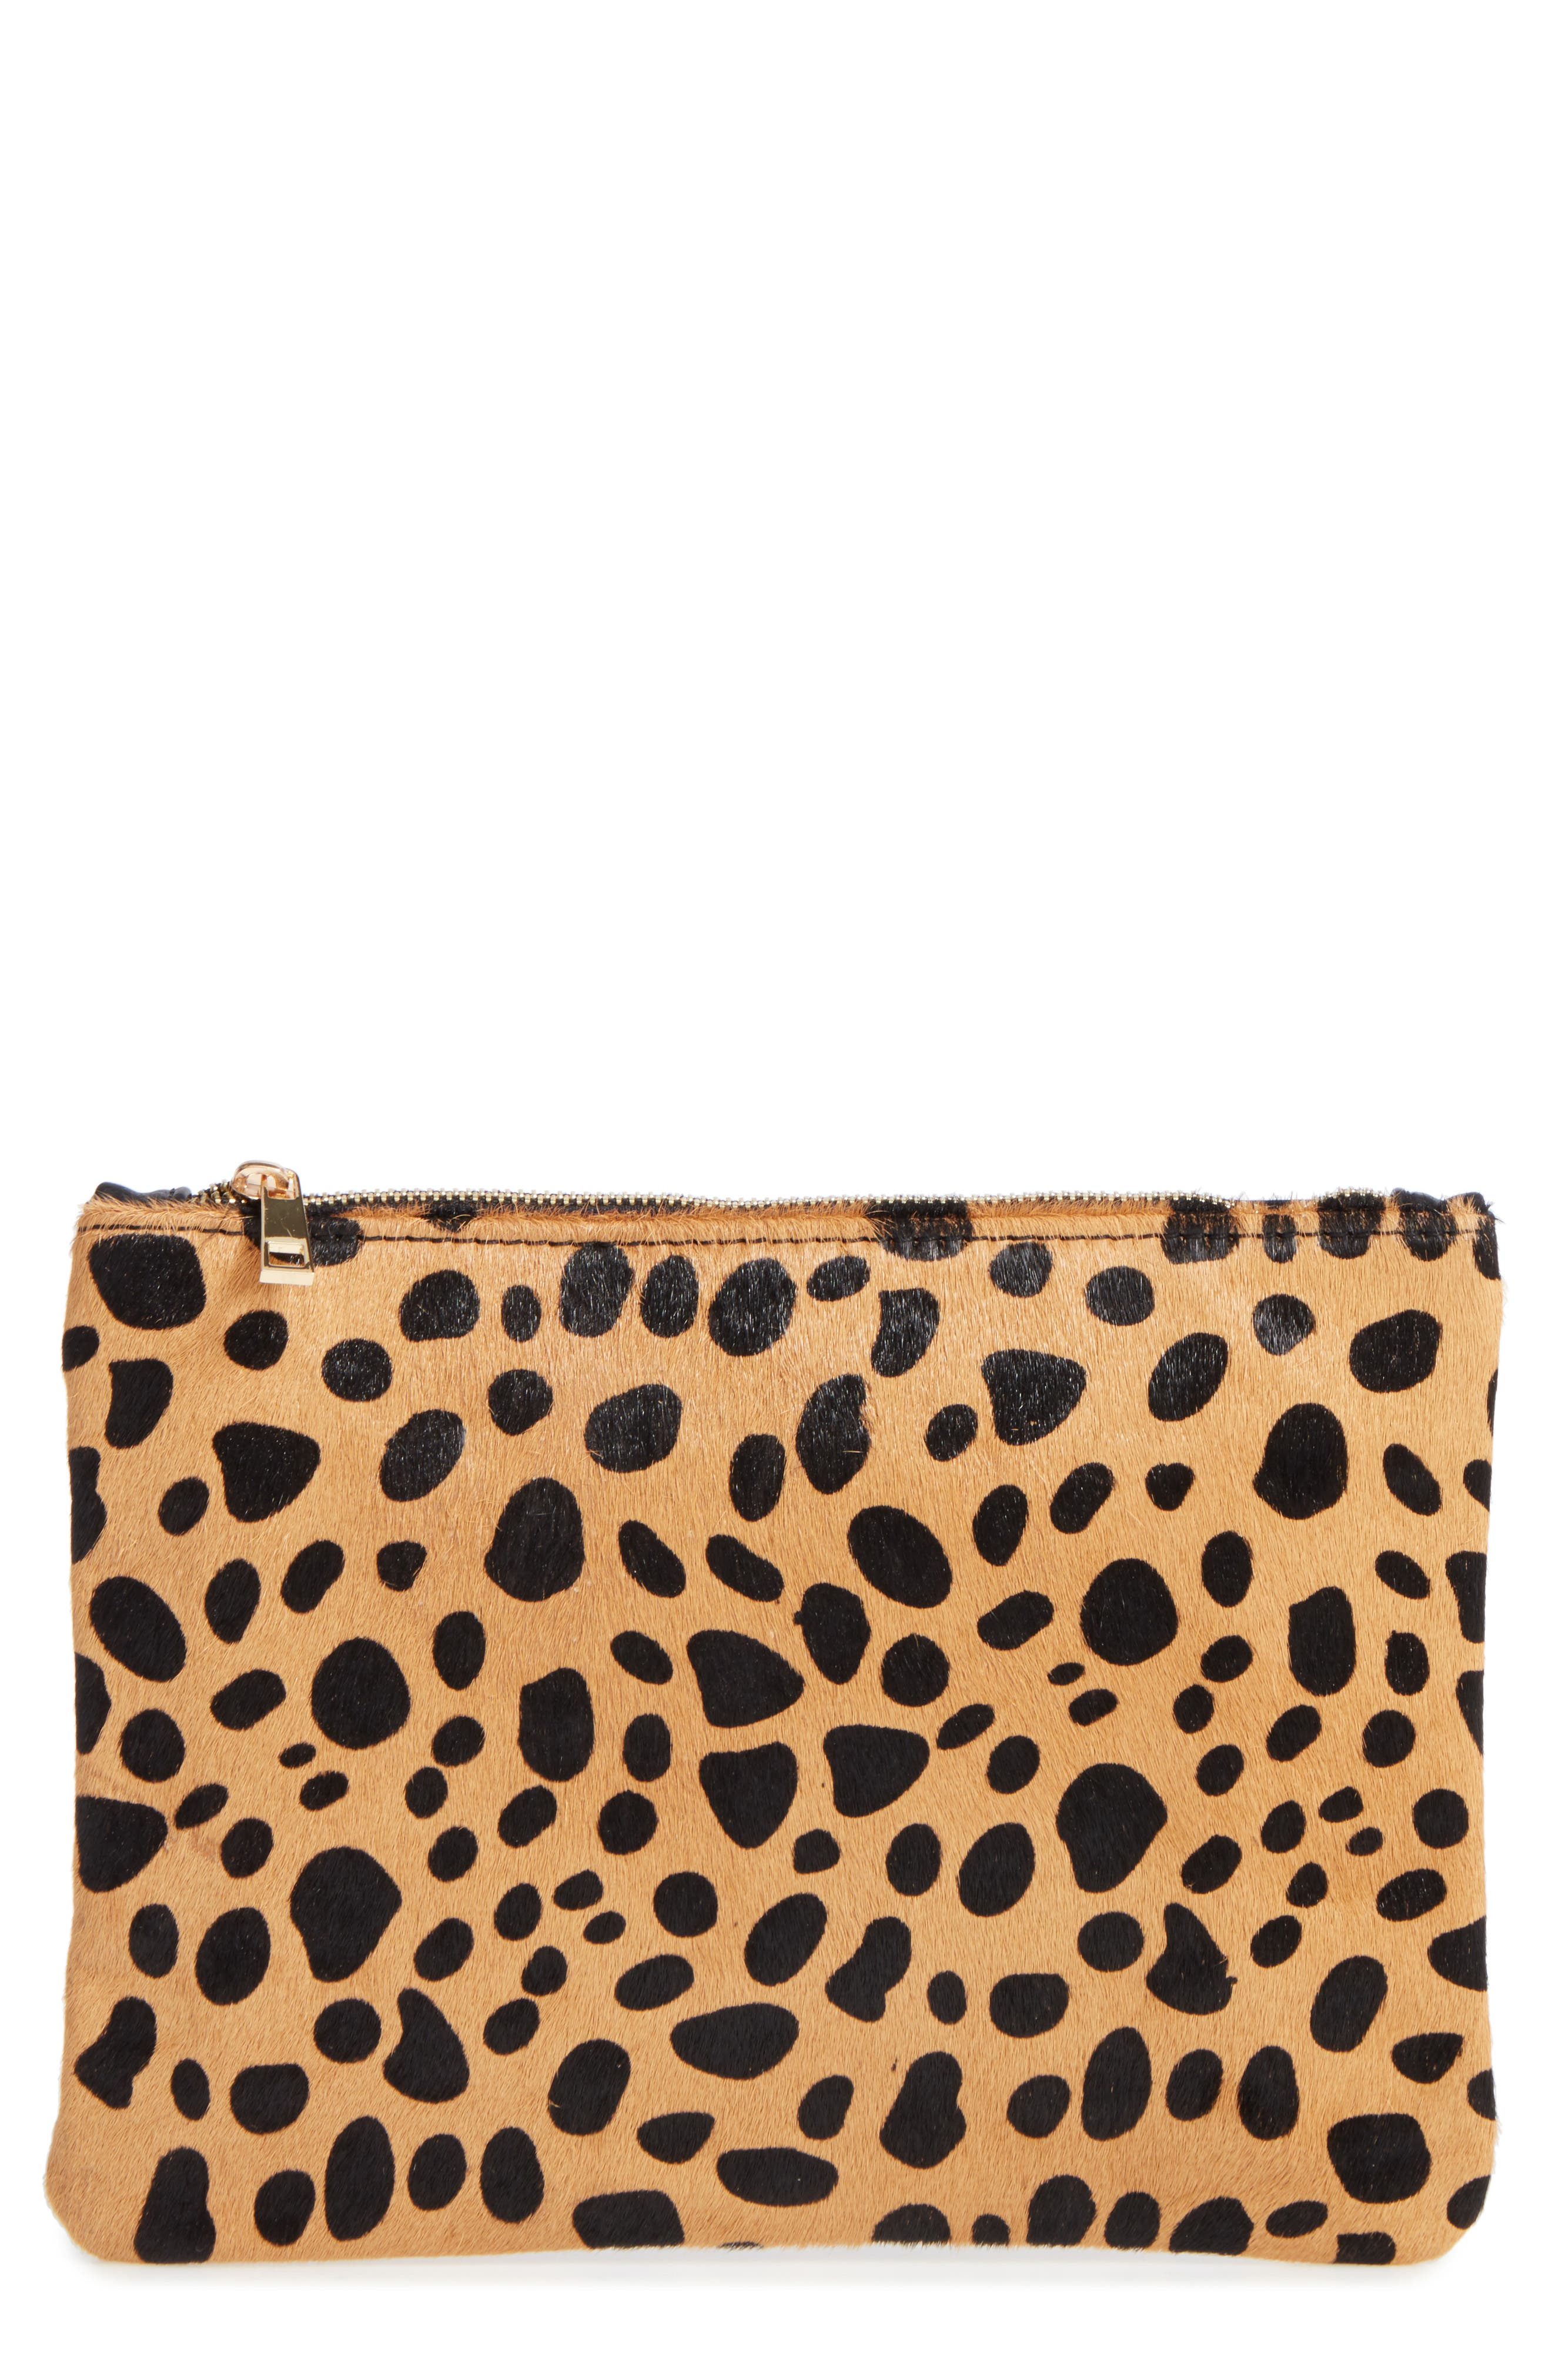 BP., Leopard Print Genuine Calf Hair Pouch, Main thumbnail 1, color, 200